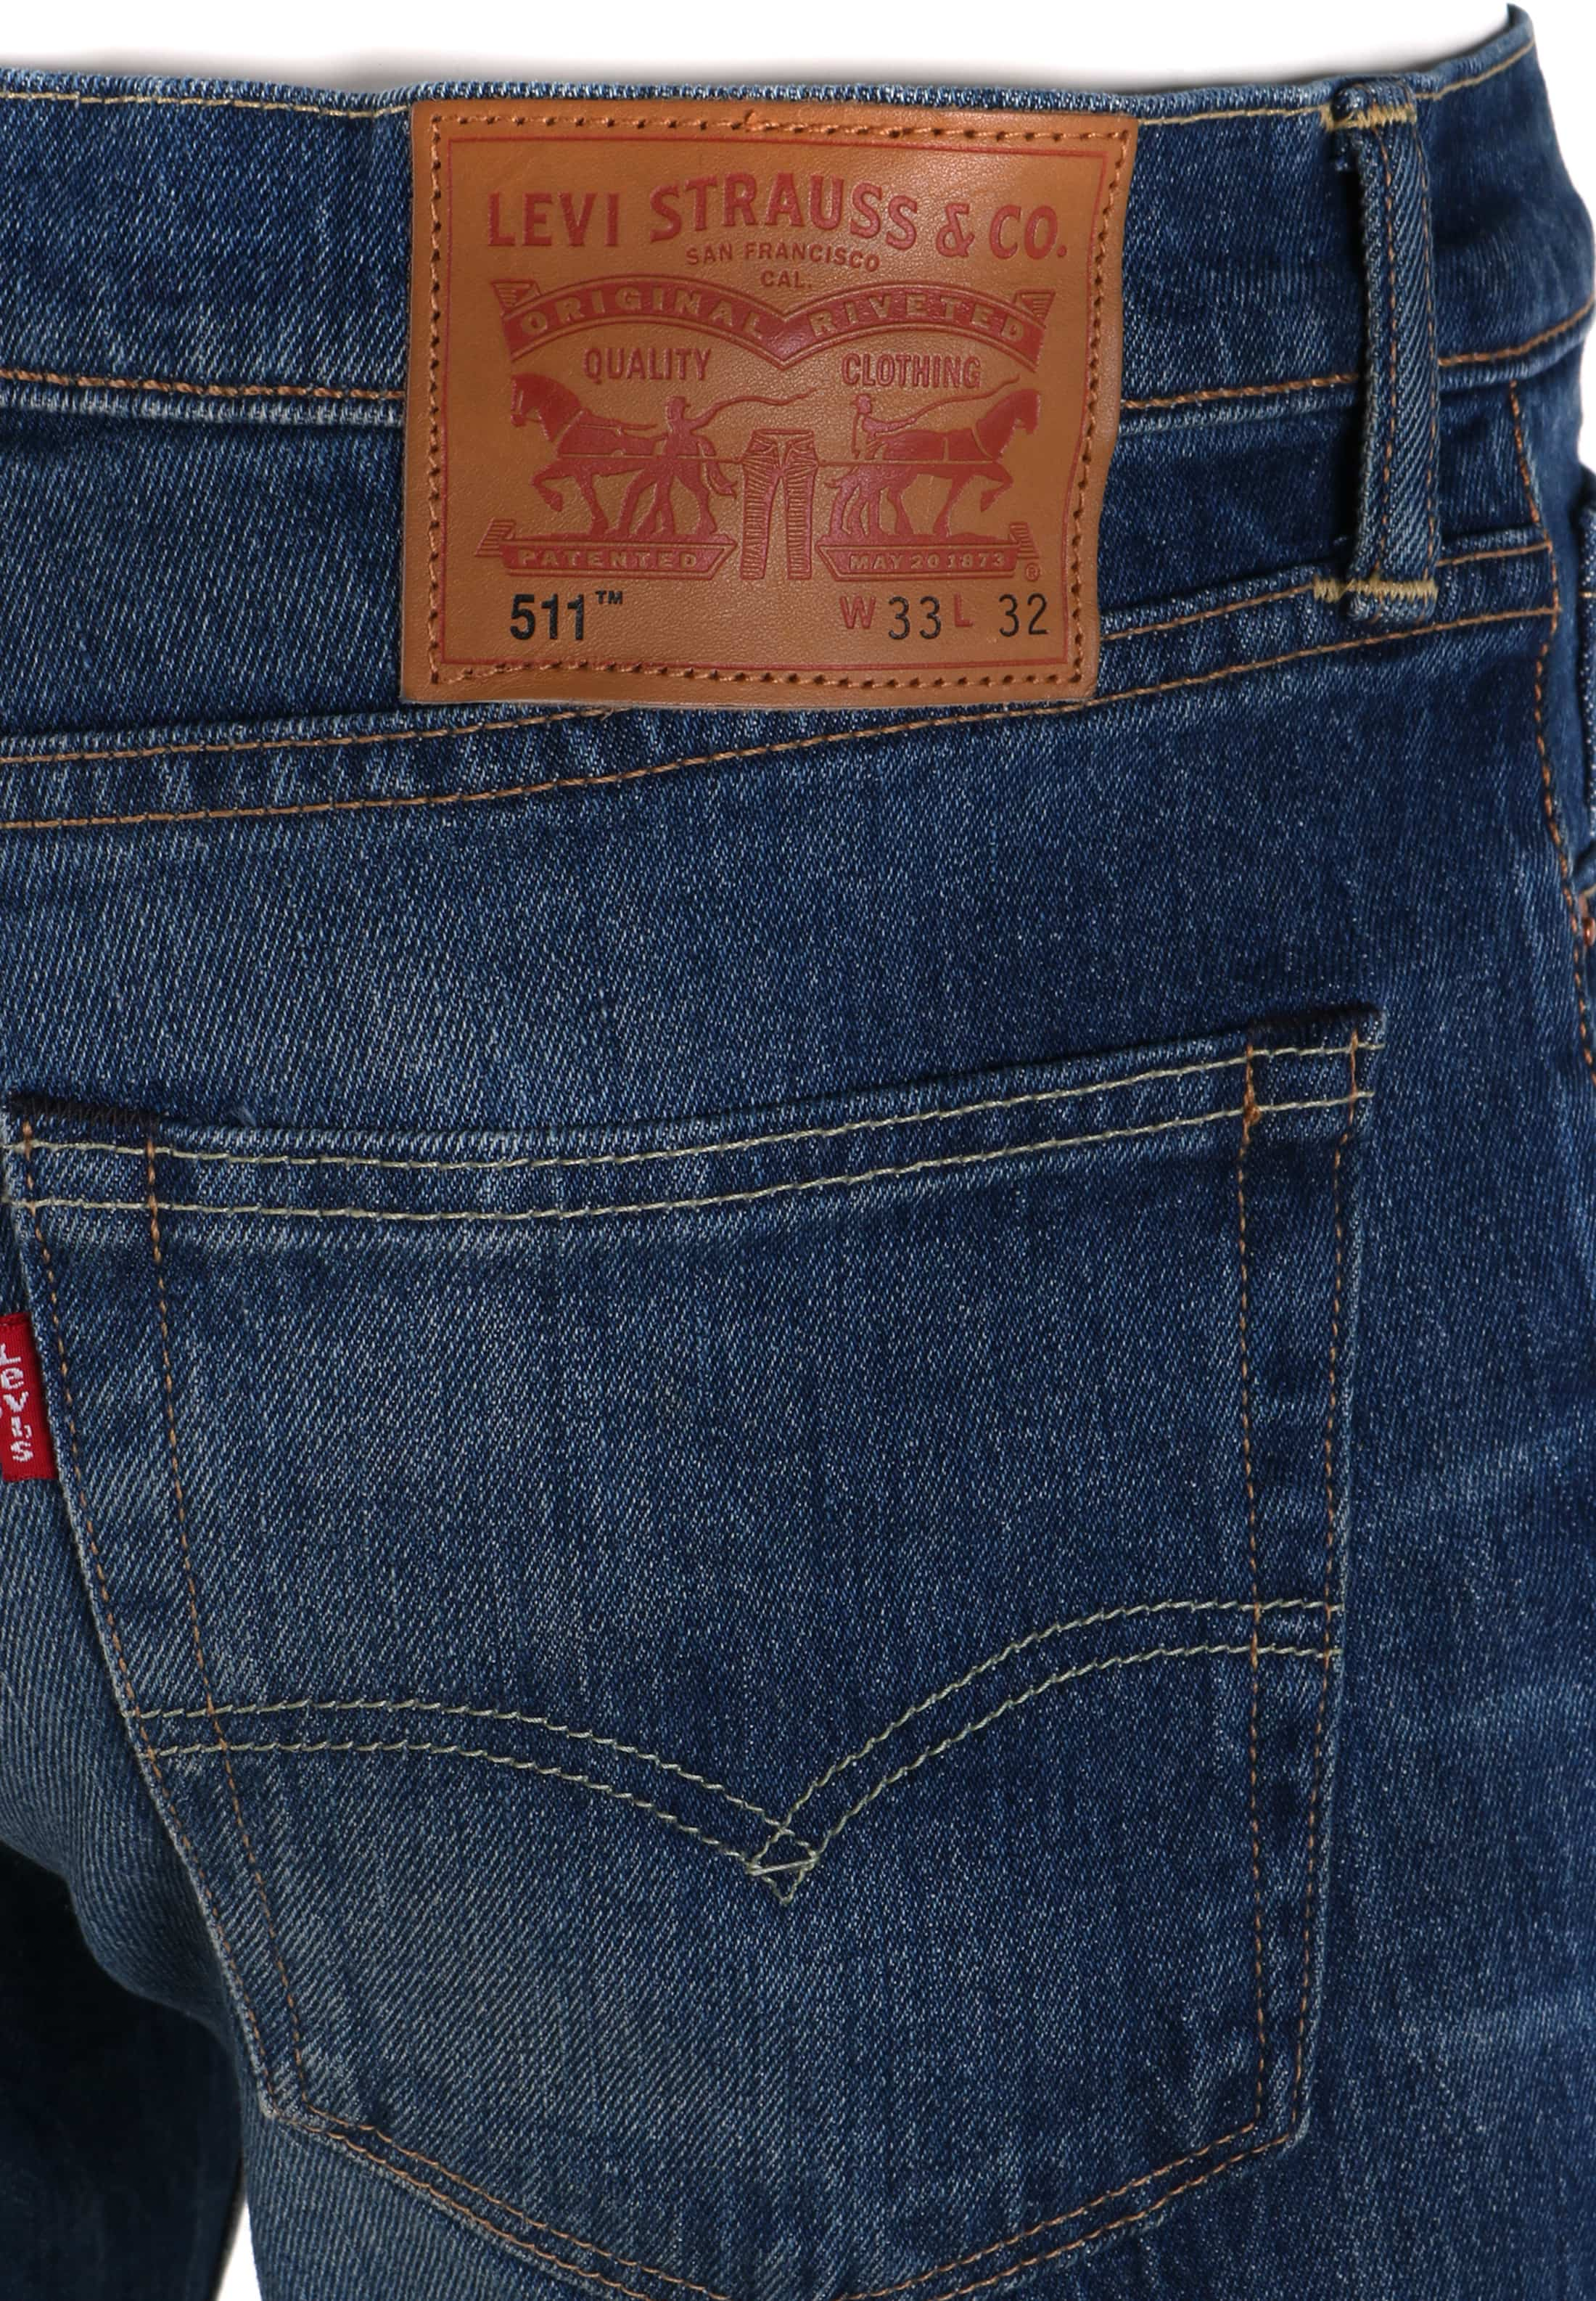 Levi's 511 Jeans Slim Fit Darkblue 1876 foto 3